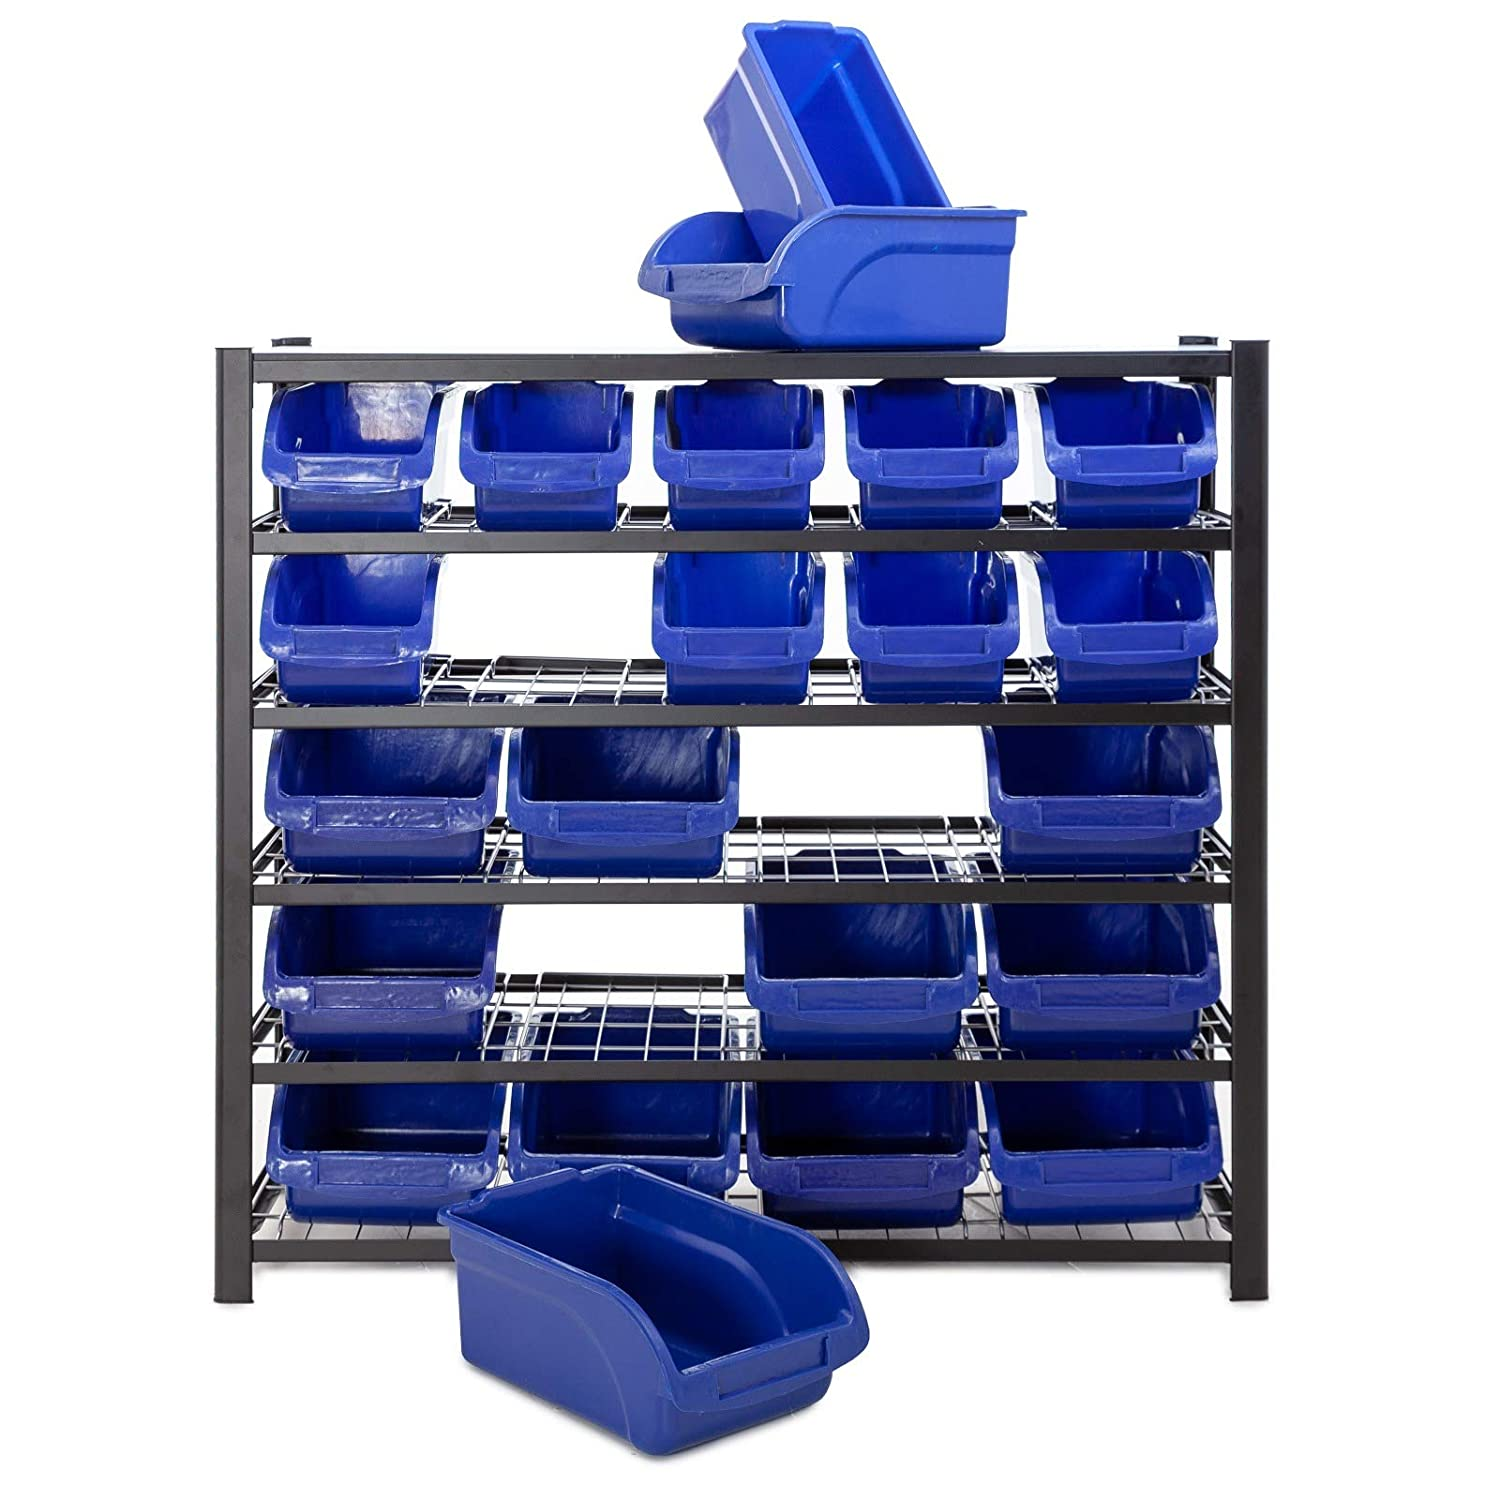 Racking Solutions Multipurpose 6 tier storage unit complete with 22 Bins.